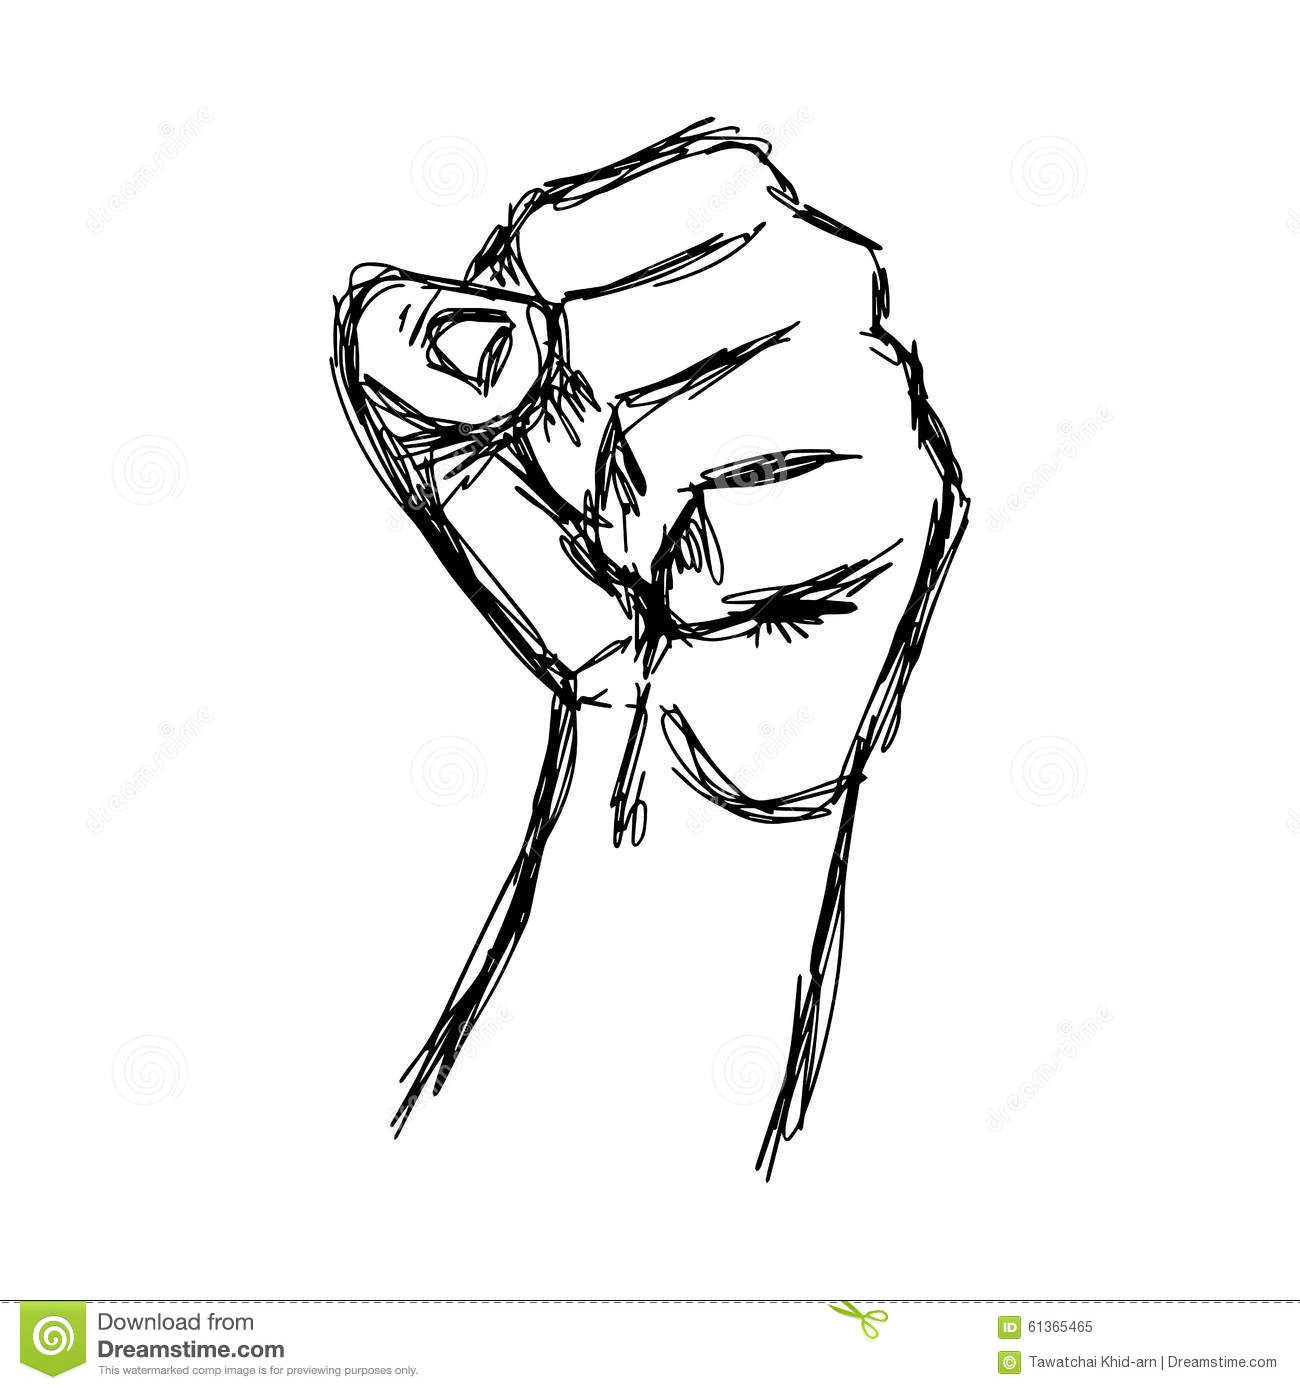 Illustration vector doodle hand drawn of sketch raised fist